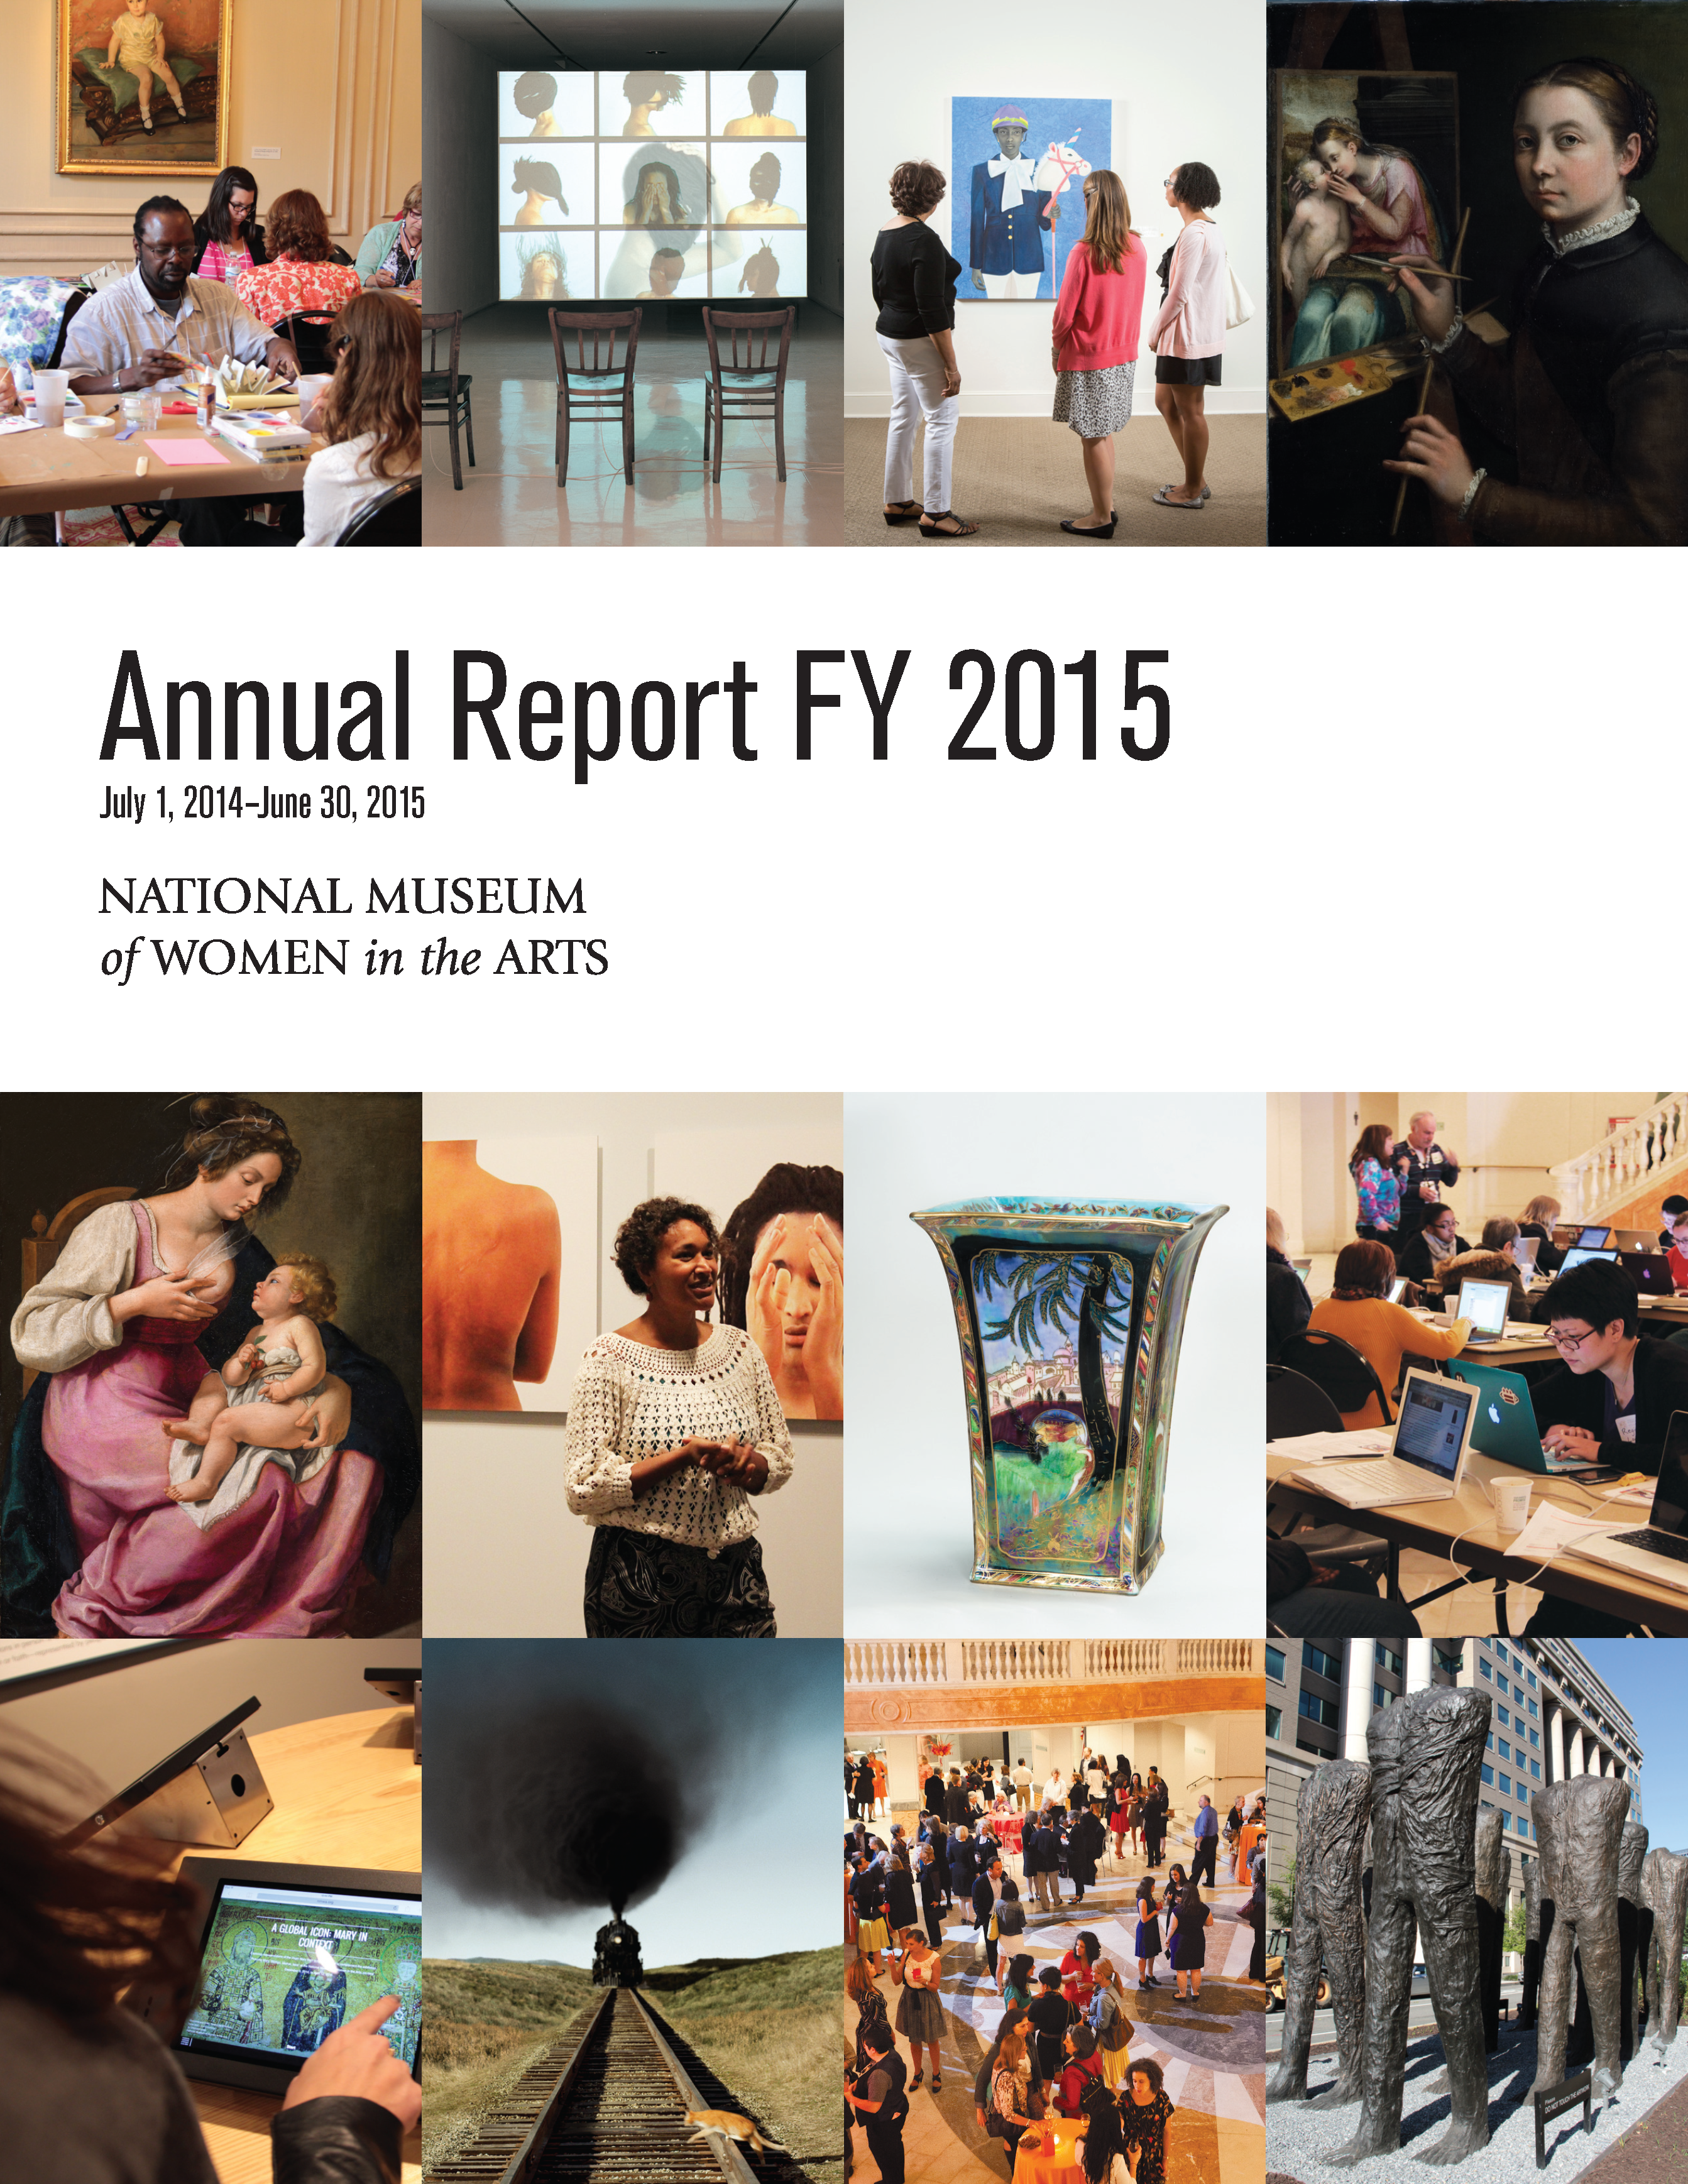 Cover of the 2015 annual report shows 12 tiled images along with the text 'Annual Report FY2015, July 1, 2014–June 30, 2015